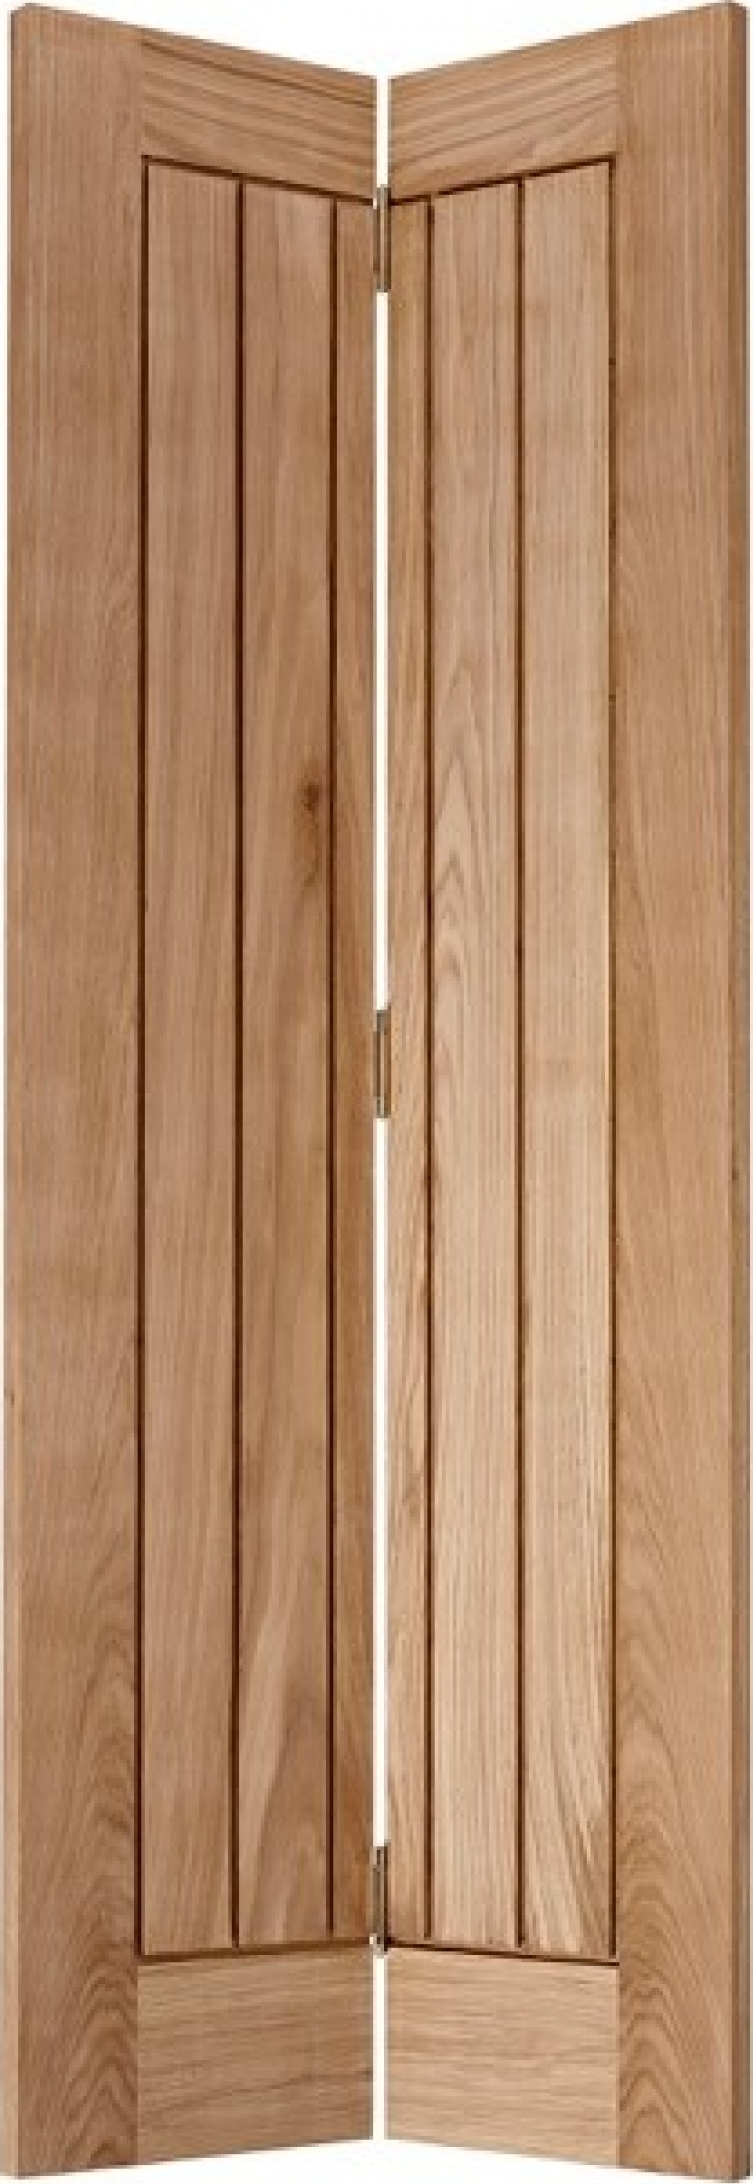 Wooden Internal Doors With: Oak Mexicano Bi-Fold Door